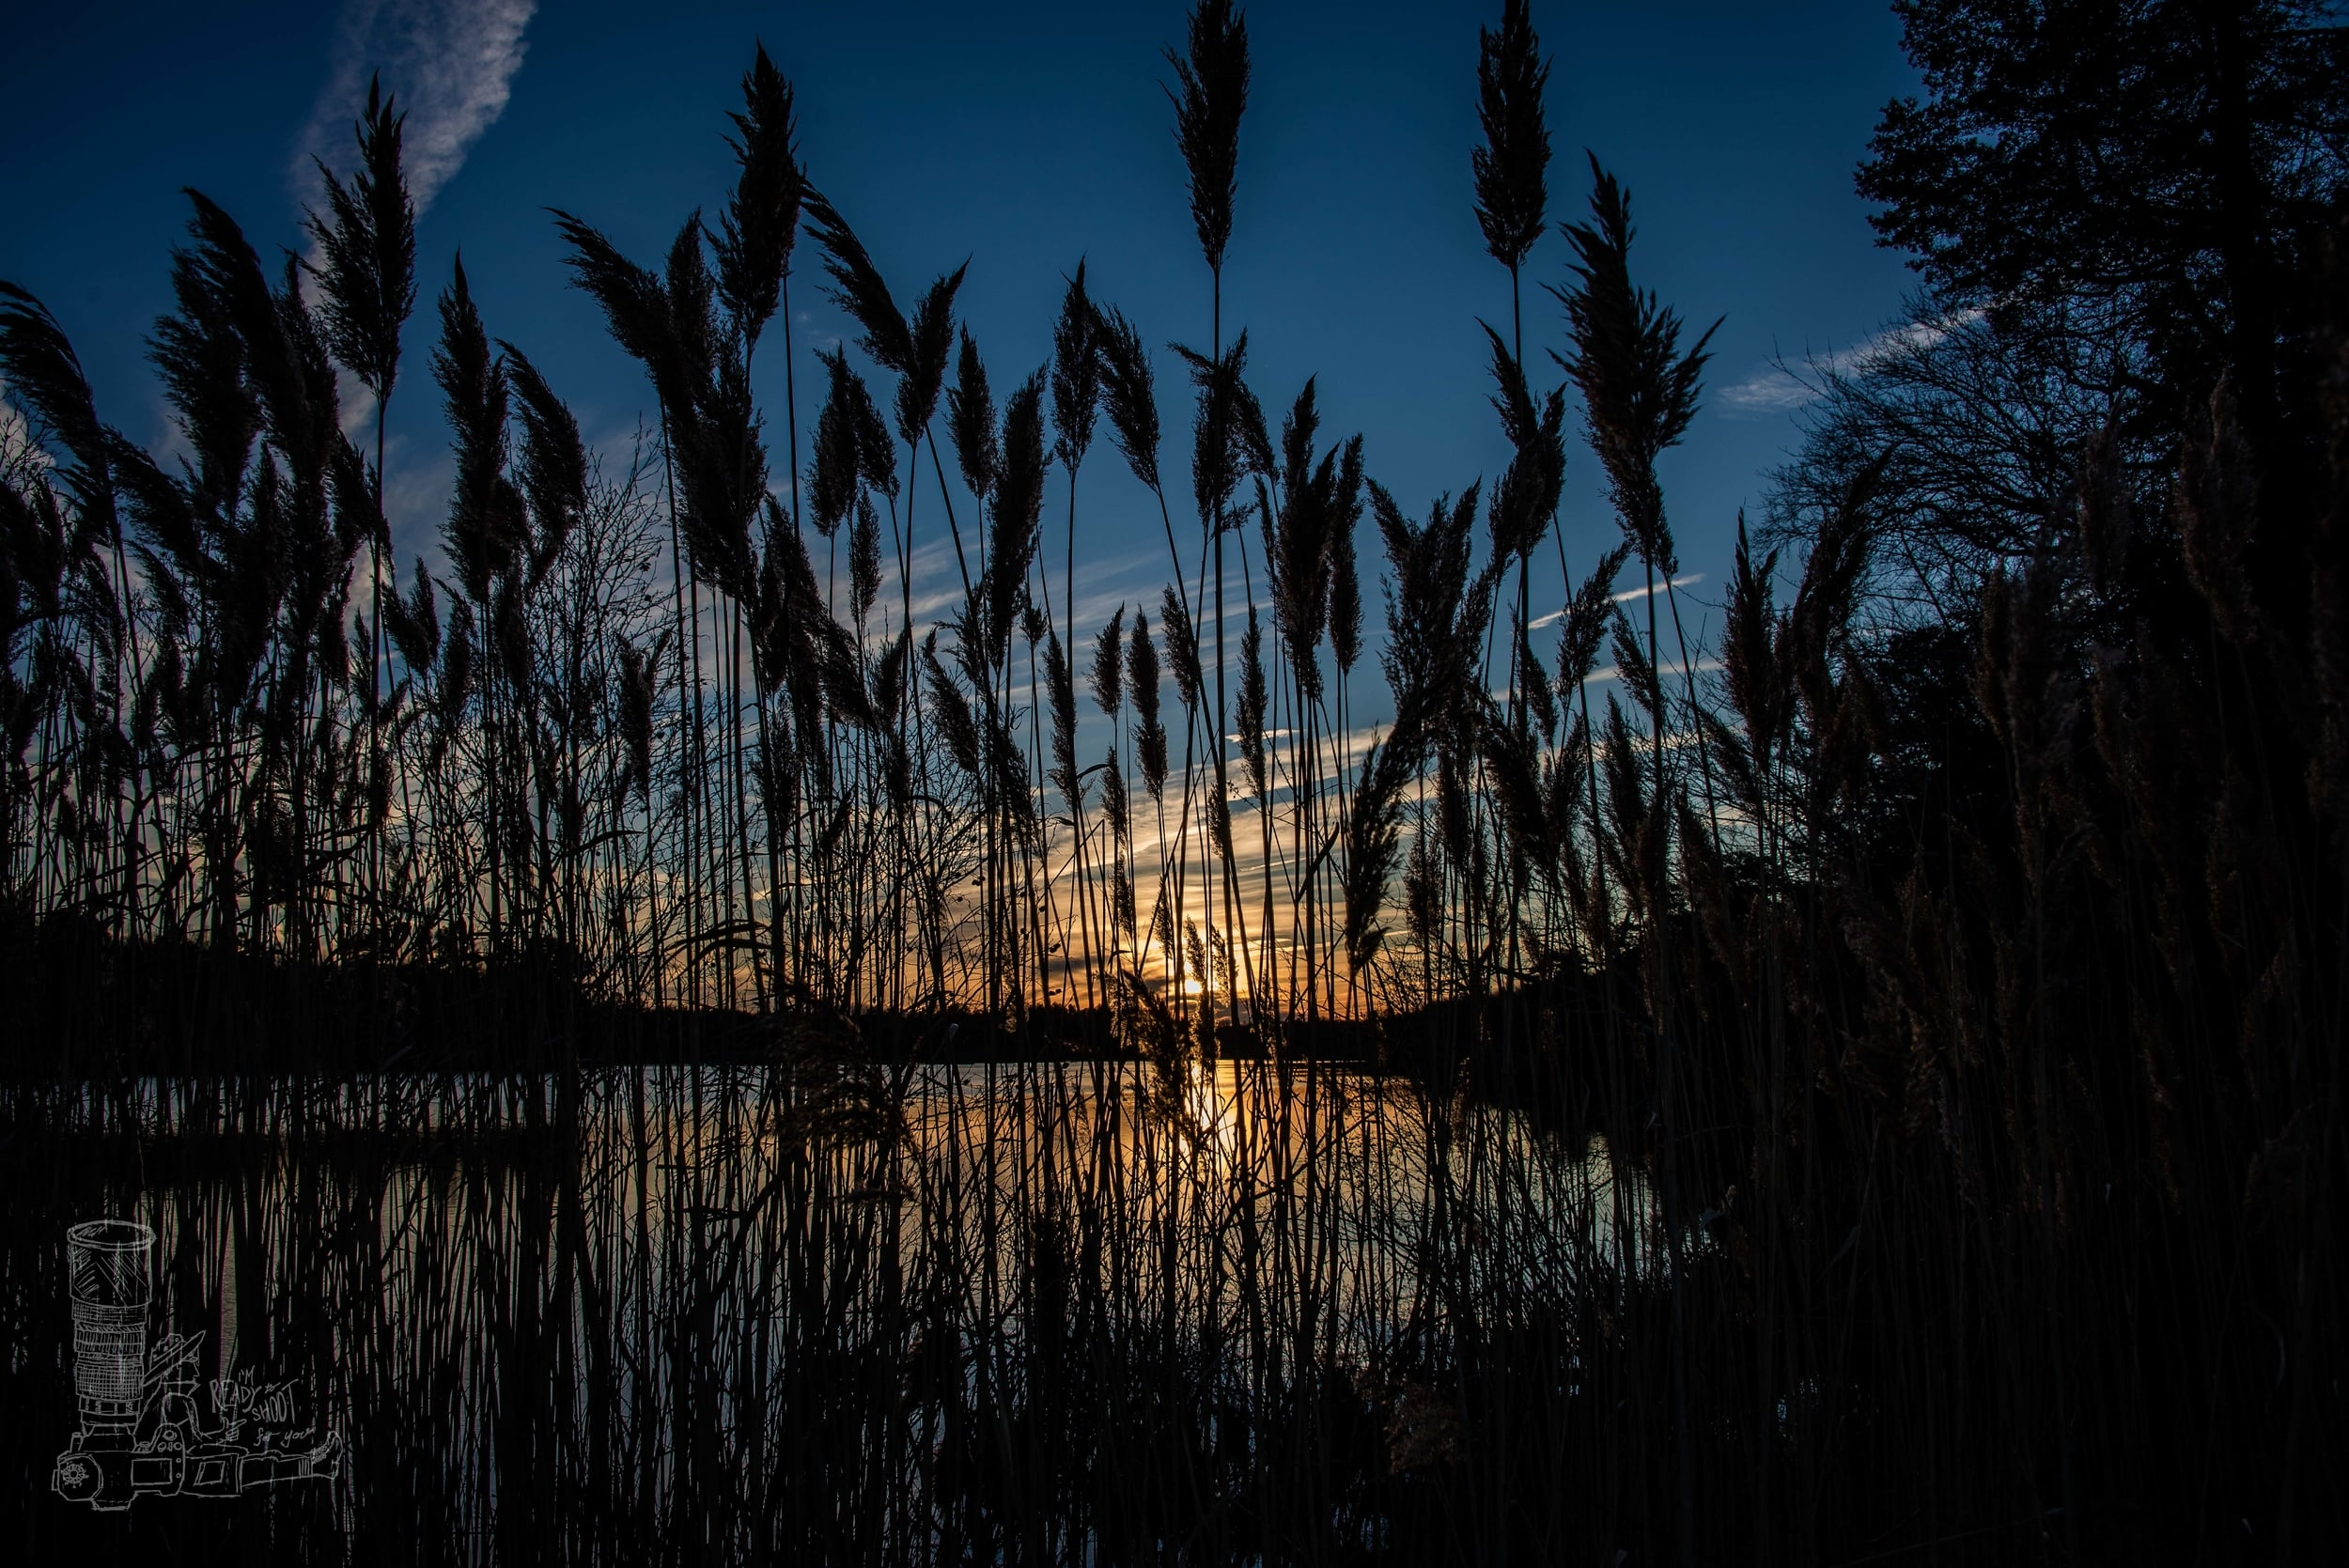 Setting Through the Reeds